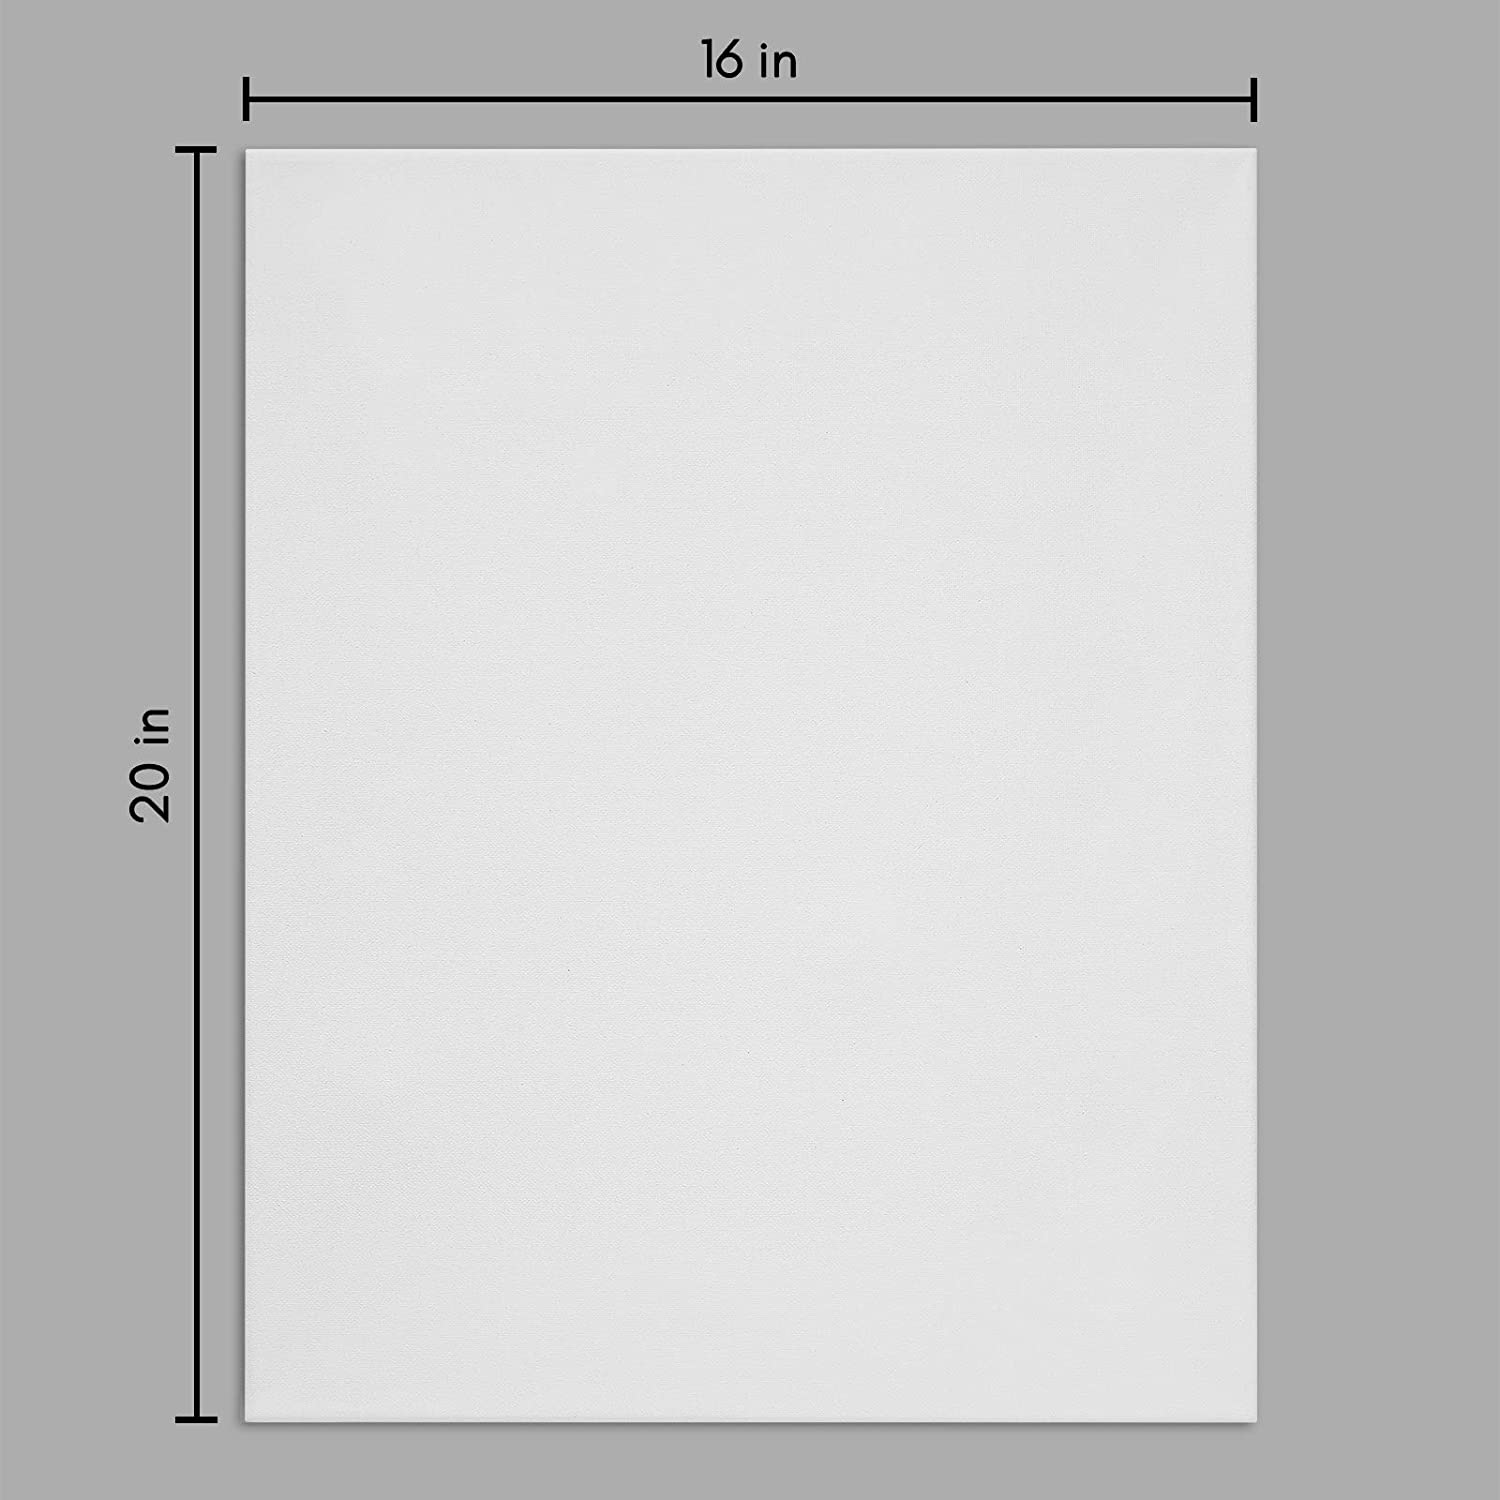 miniature 39 - Americanflat Stretched Canvas in White 100% Cotton Wooden Frames & Acid Free